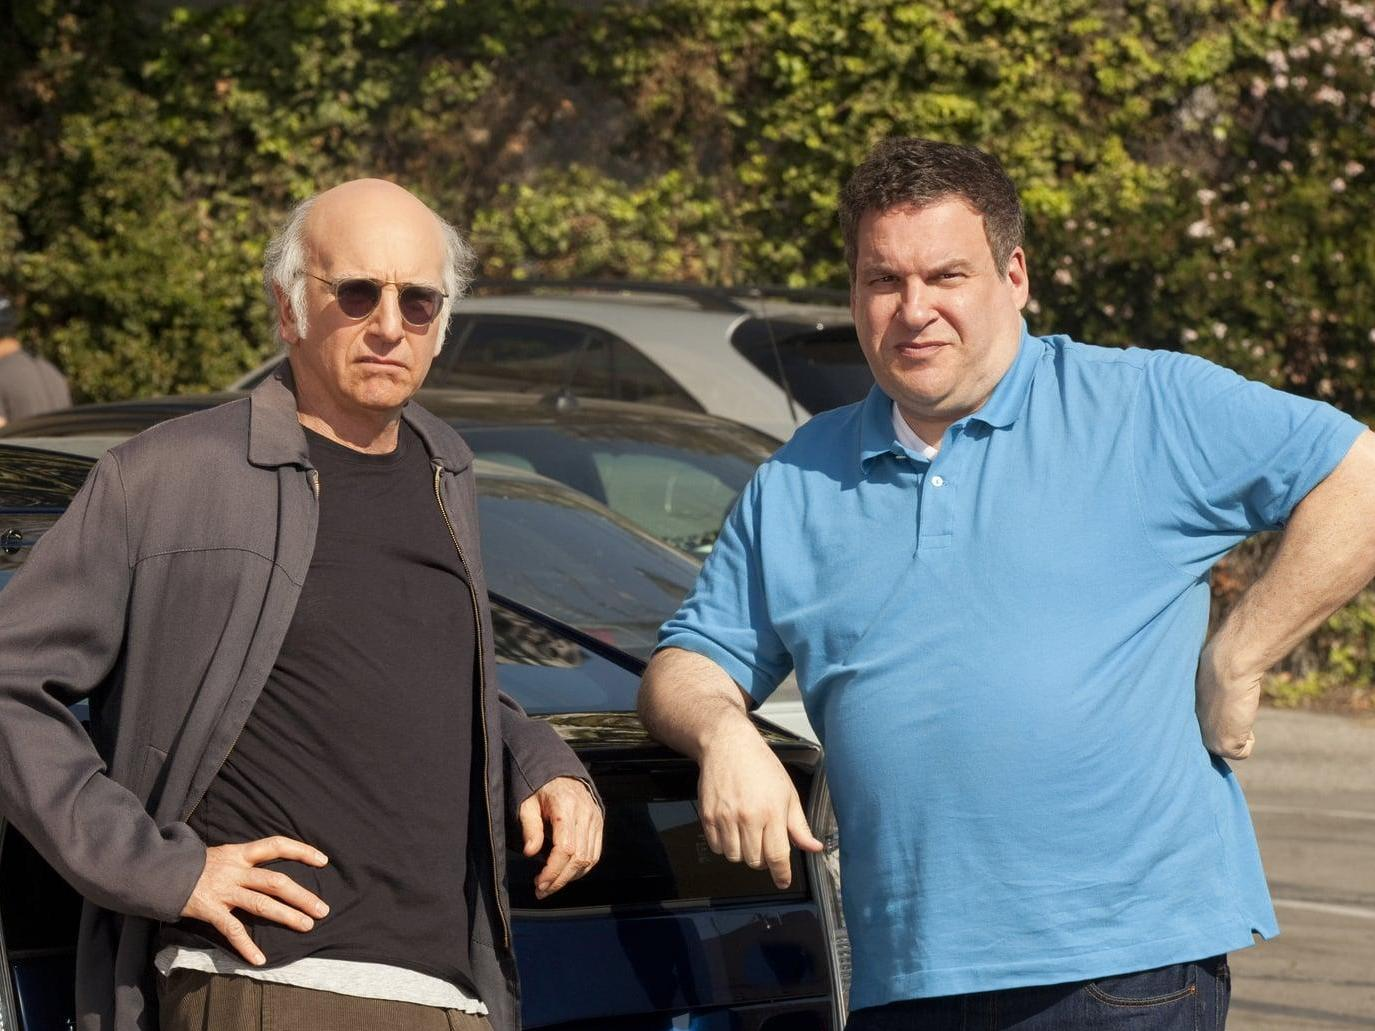 Curb Your Enthusiasm season 10 release date: Jeff Garlin just prematurely revealed when HBO show will return